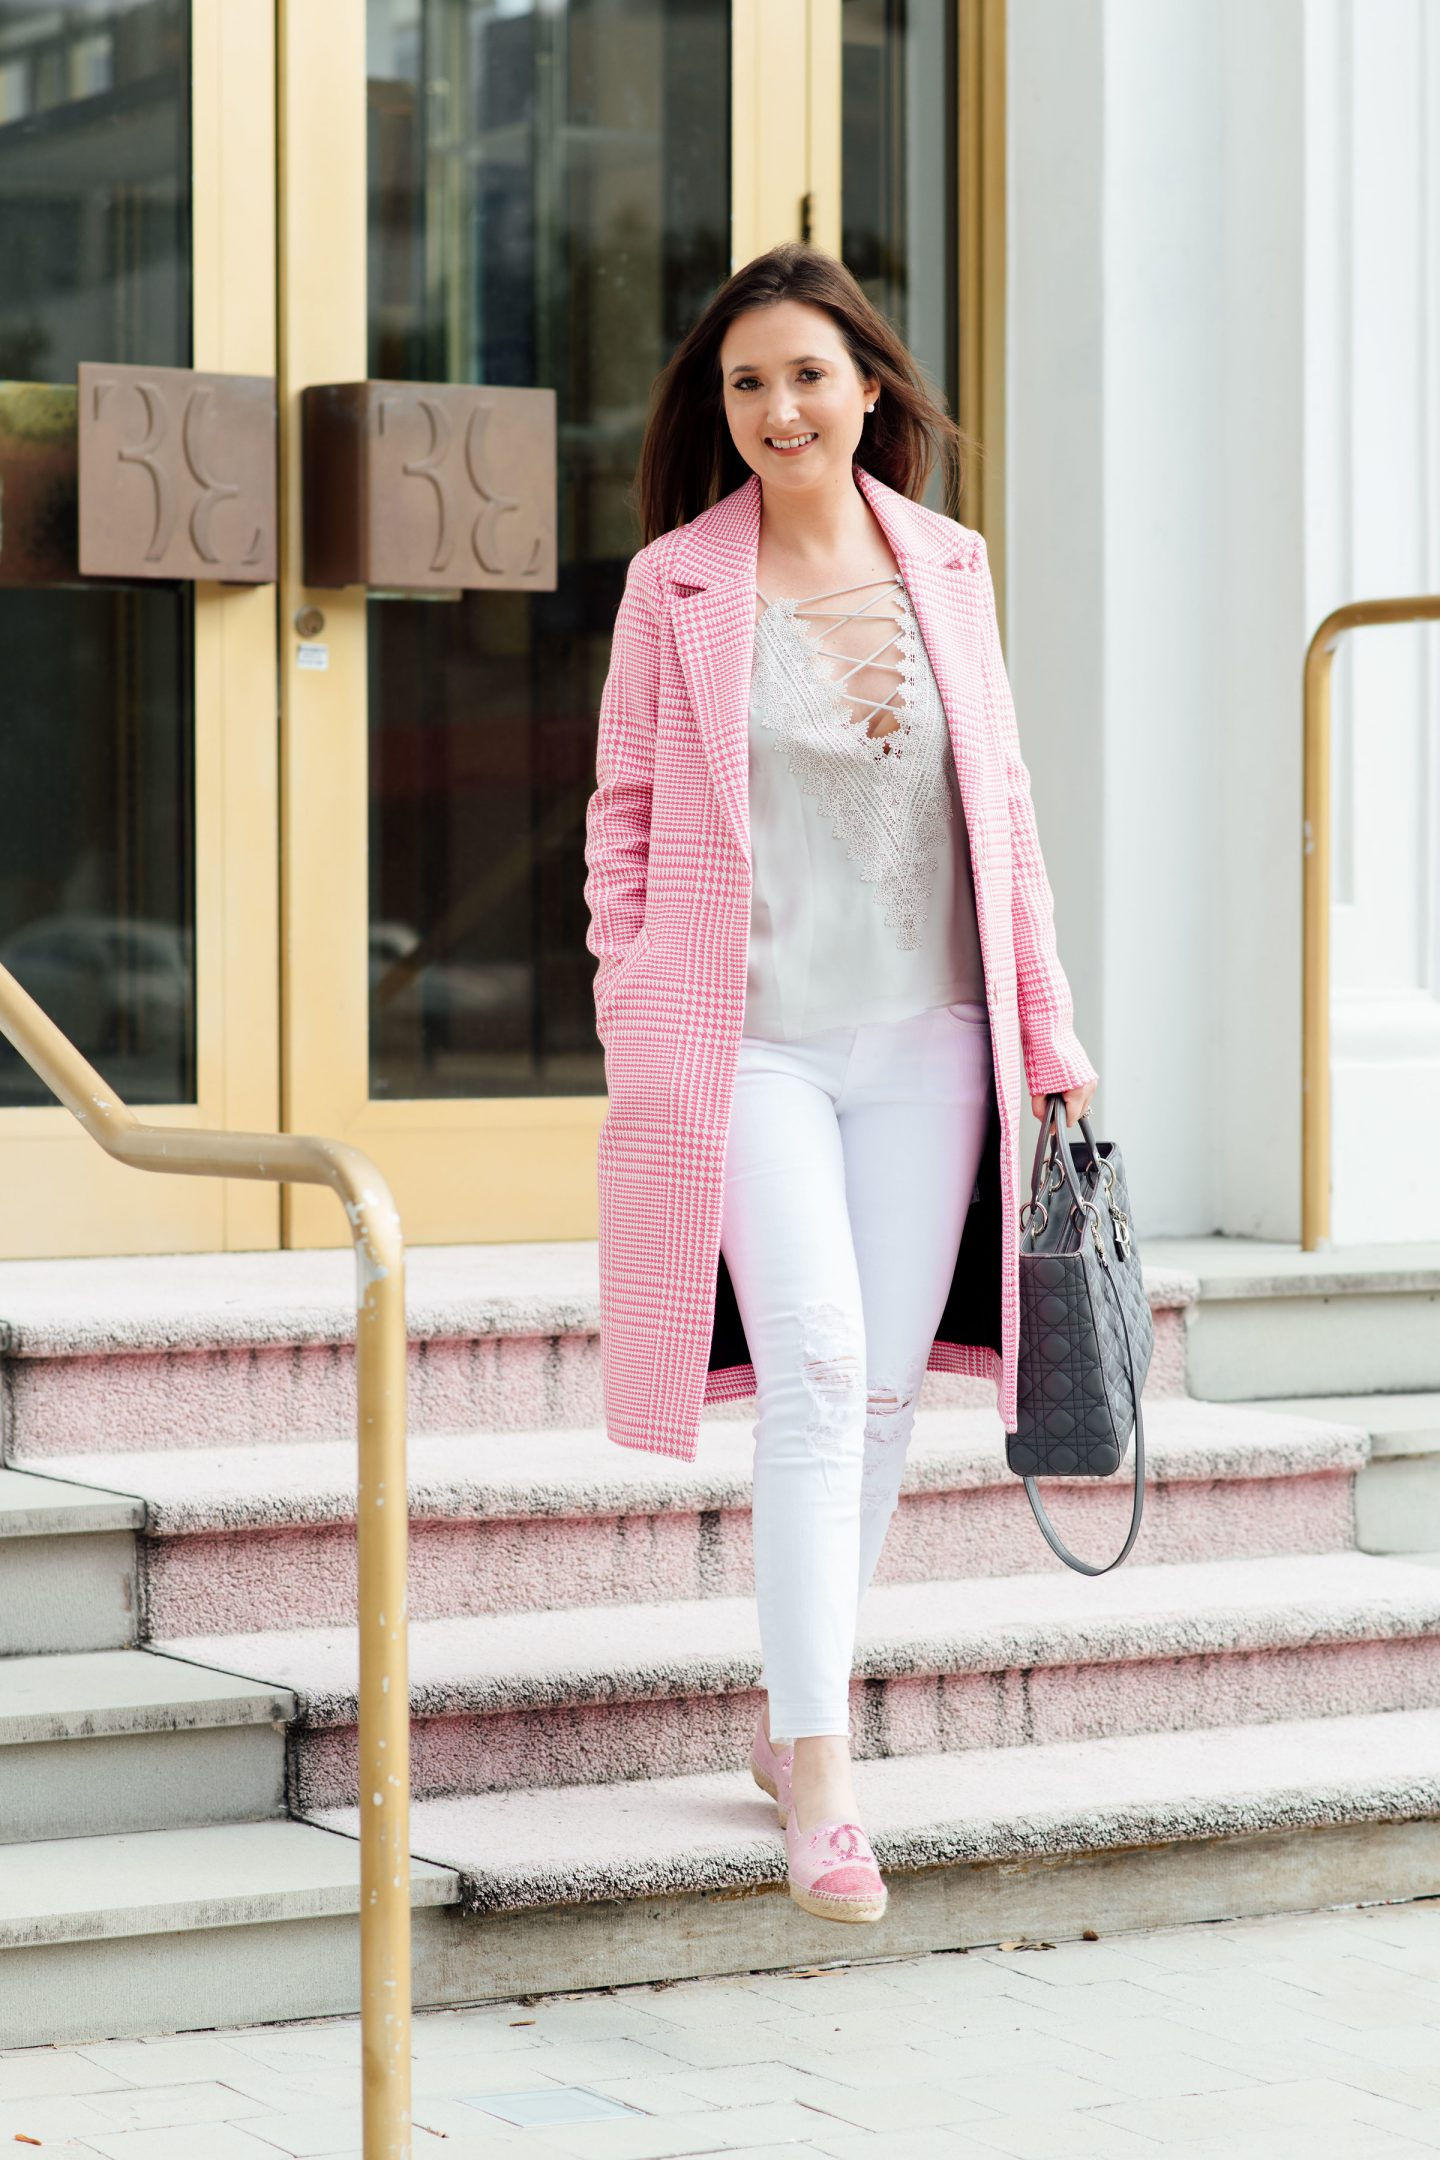 5 wardrobe essentials that will get you excited to start your day, wardrobe essentials, WAYF posie came, wayf camisole, pink trench coat, asos coat, white jeans, pink checkered coat, lady Dior, lady Dior medium, Chanel espadrilles, espadrilles, Miami fashion blogger, fashion blogger